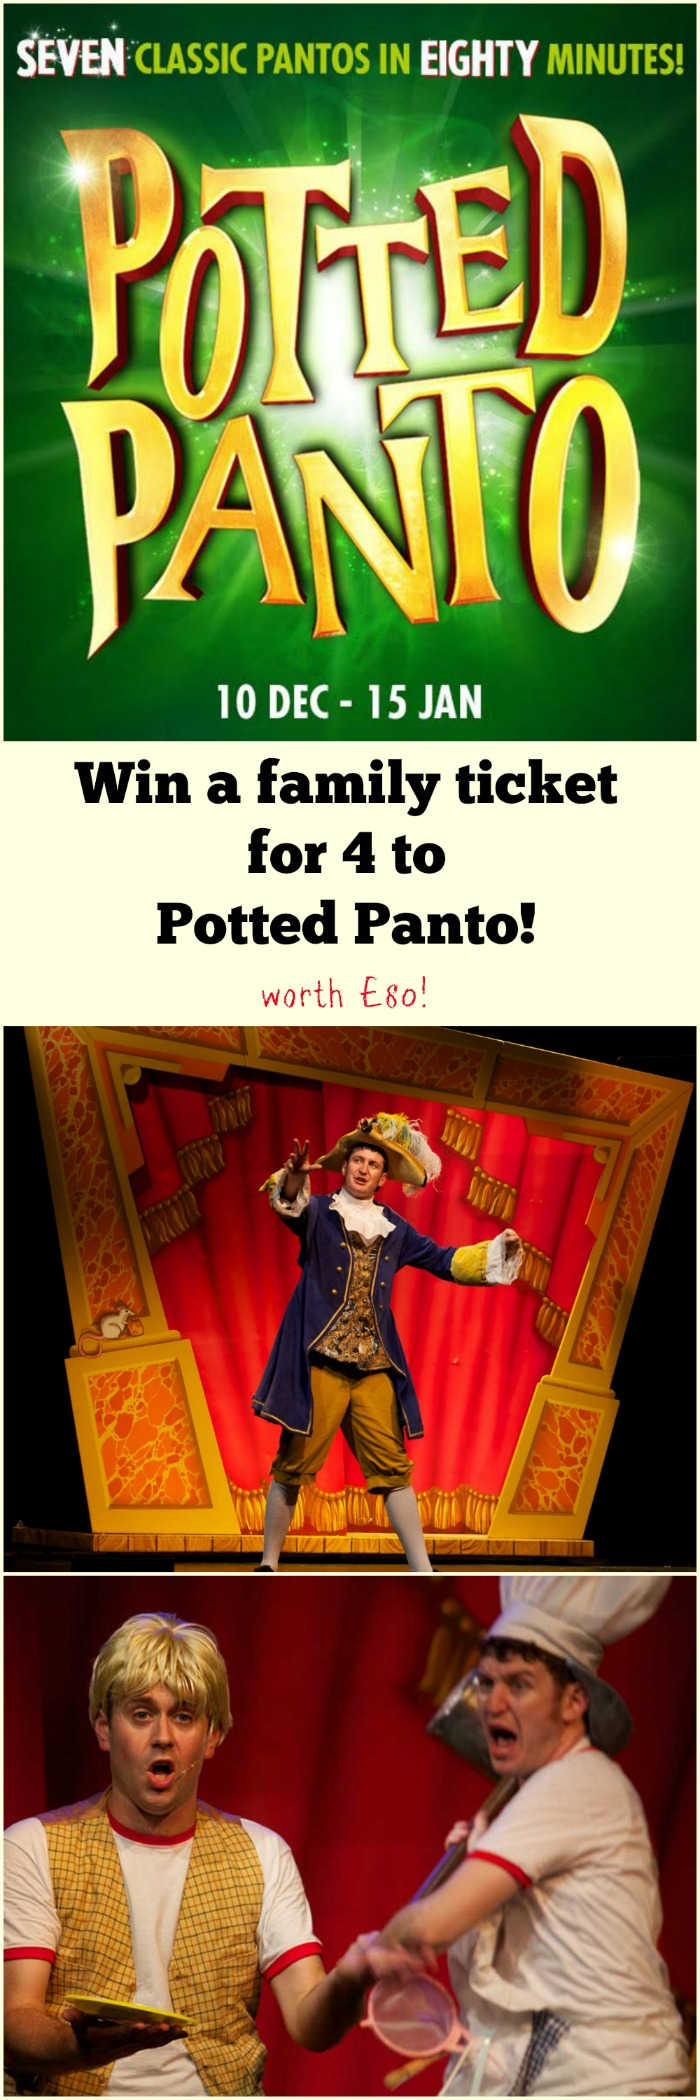 Potted panto ticket giveaway